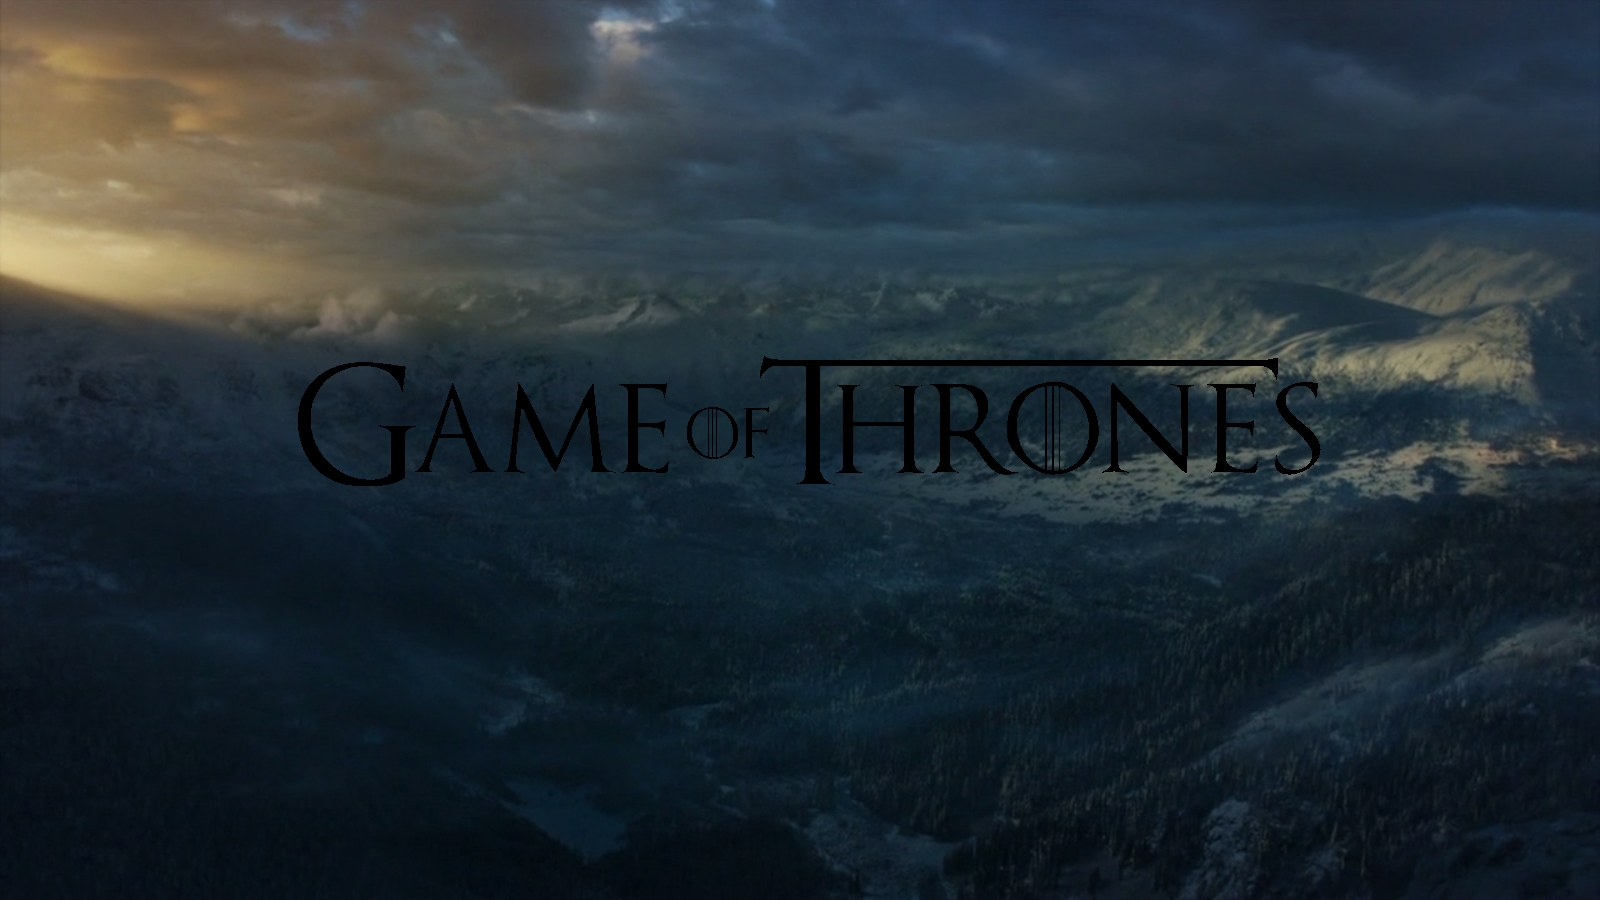 game of thrones wallpaper - biwallpaper